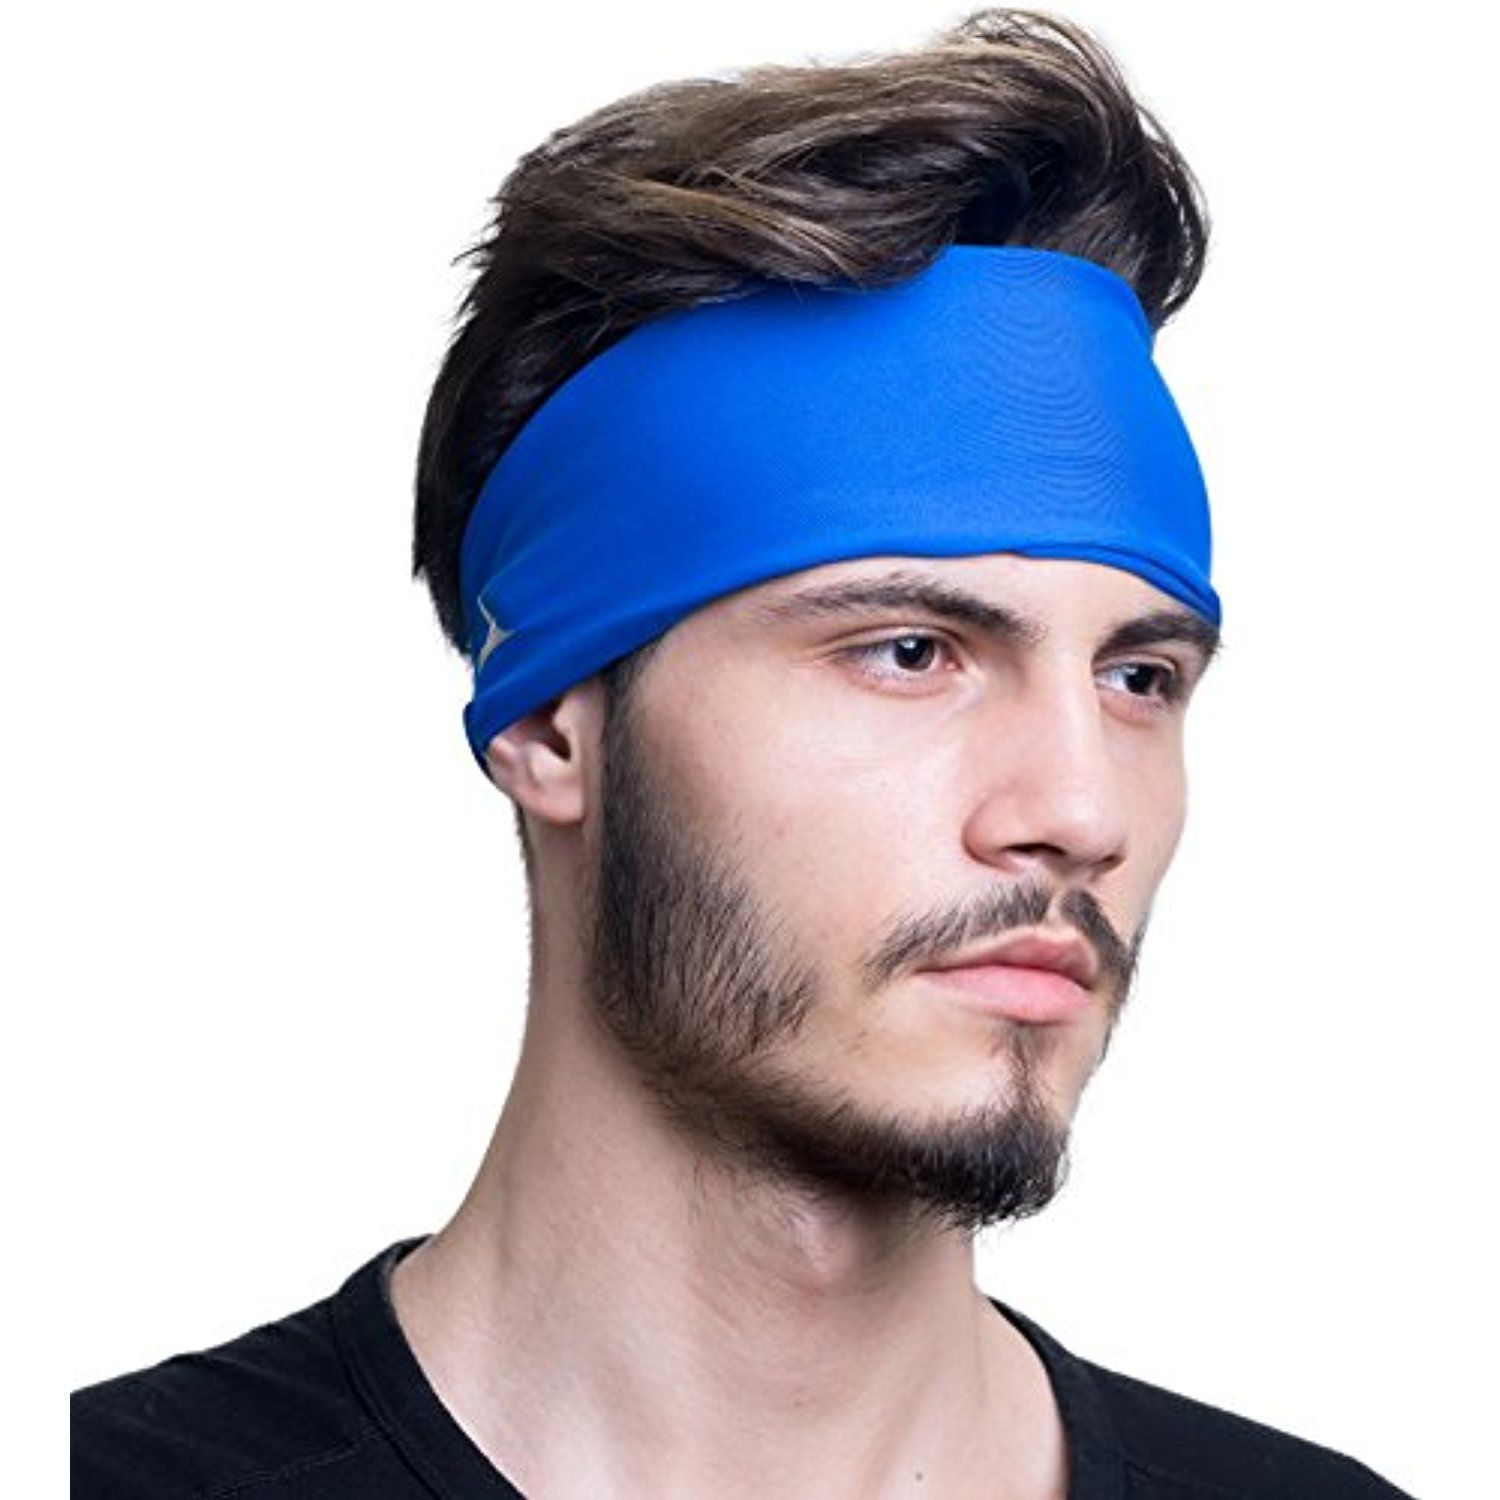 Mens Headband   Sweatband Best for Sports 8d3800c8243